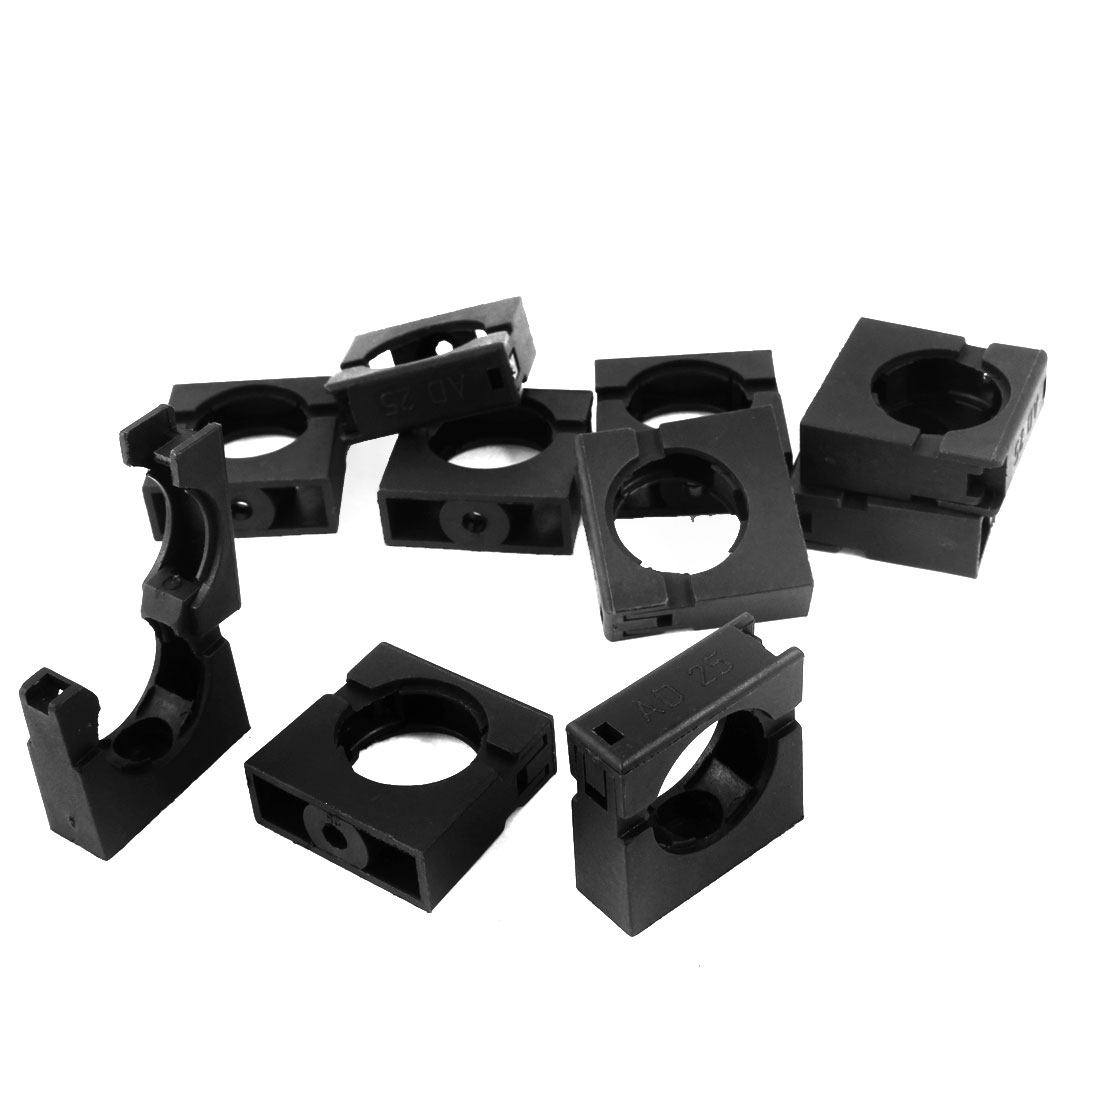 10pcs 25mm Corrugated Tubing Black Plastic Fixed Mount Bracket